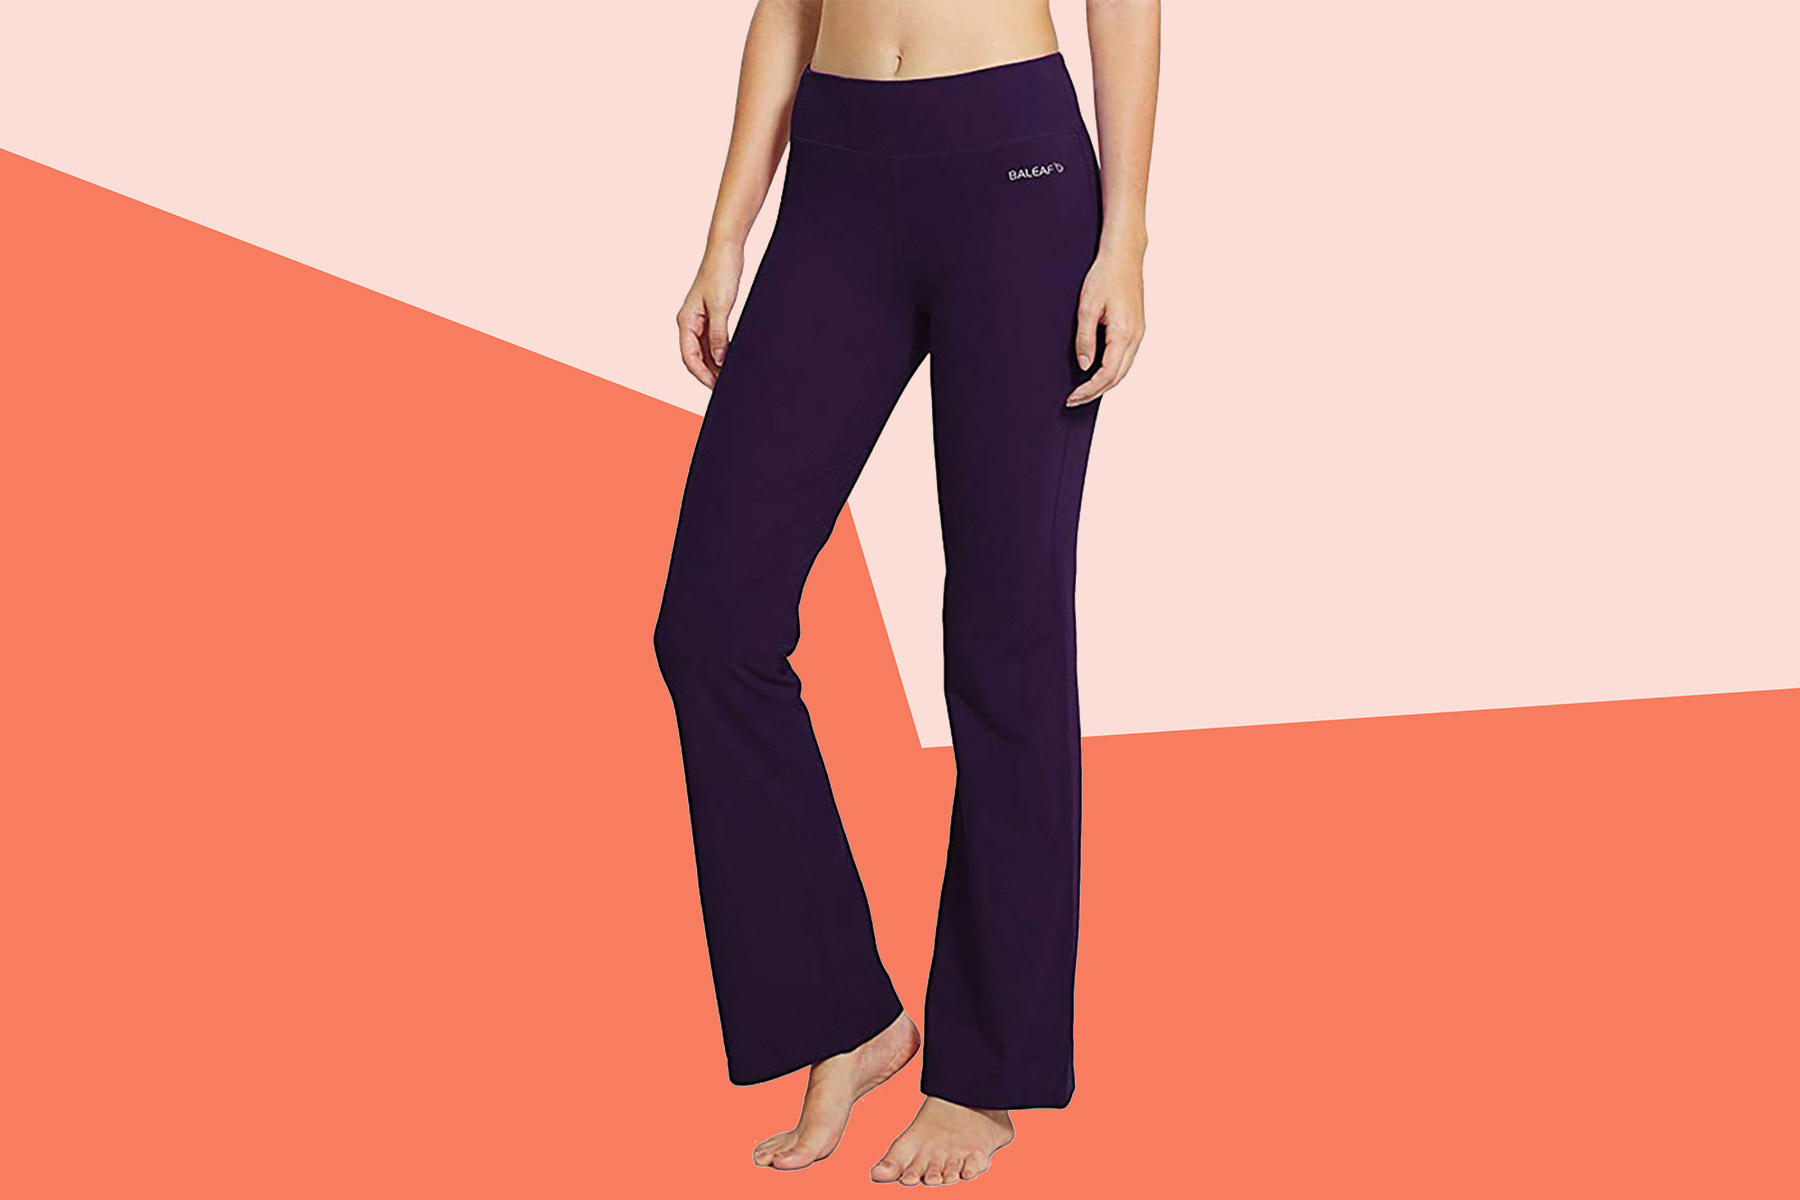 7 Best Yoga Pants On Amazon According To Customers Real Simple